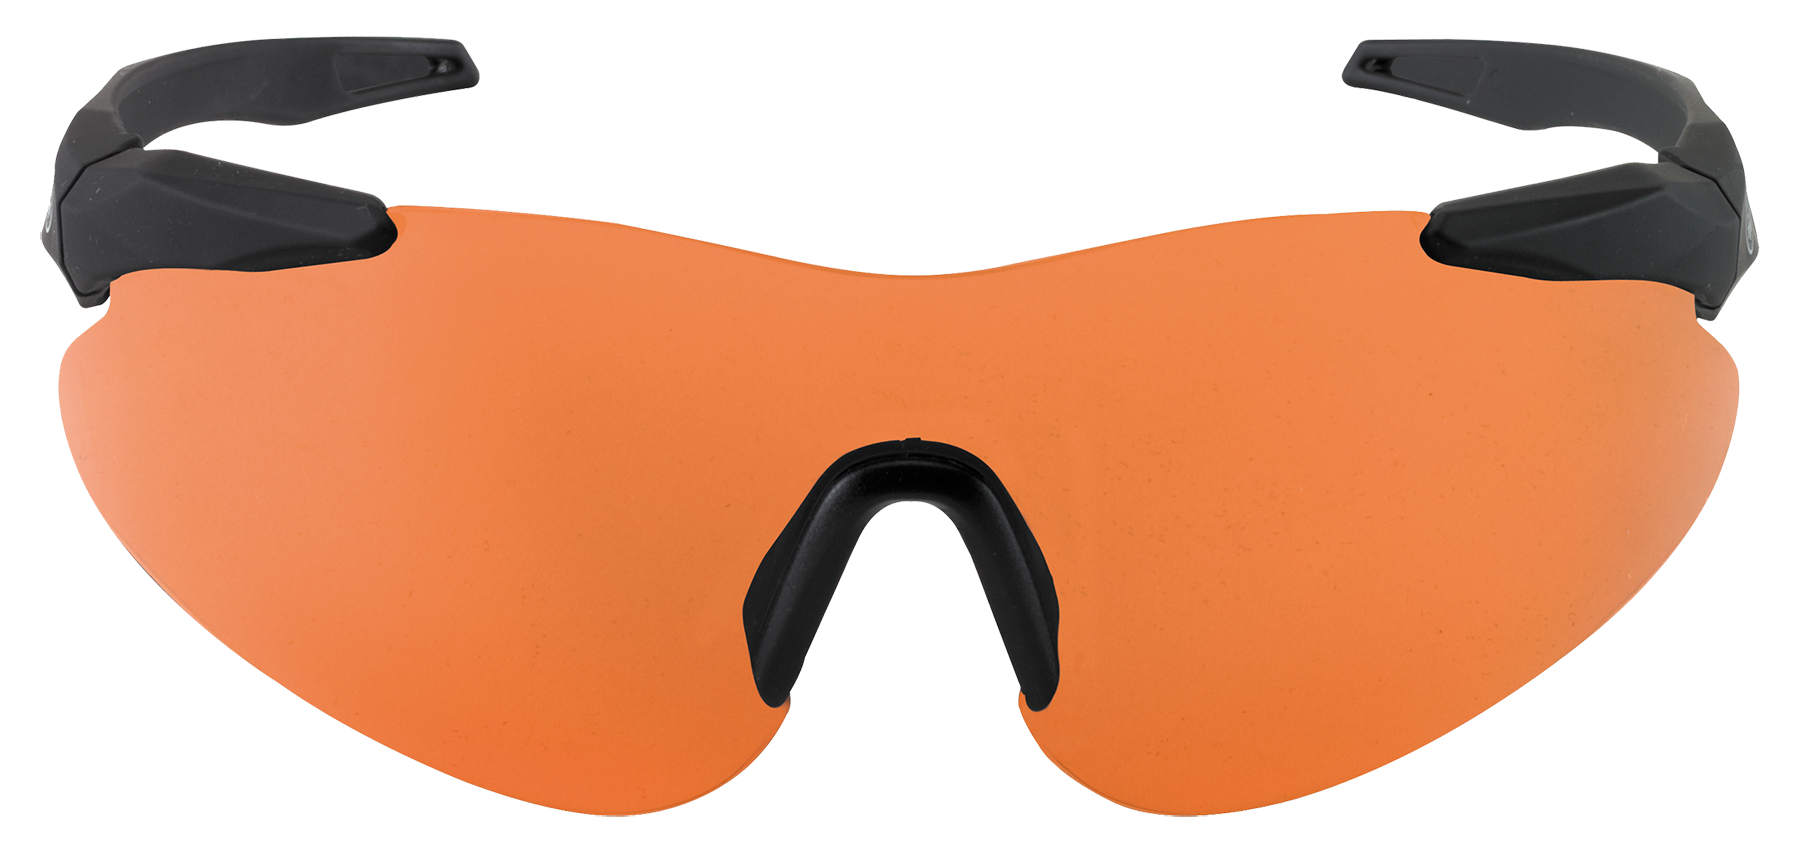 Beretta OCA100020407 Soft Touch Shooting Glasses Black Frame Orange Lenses